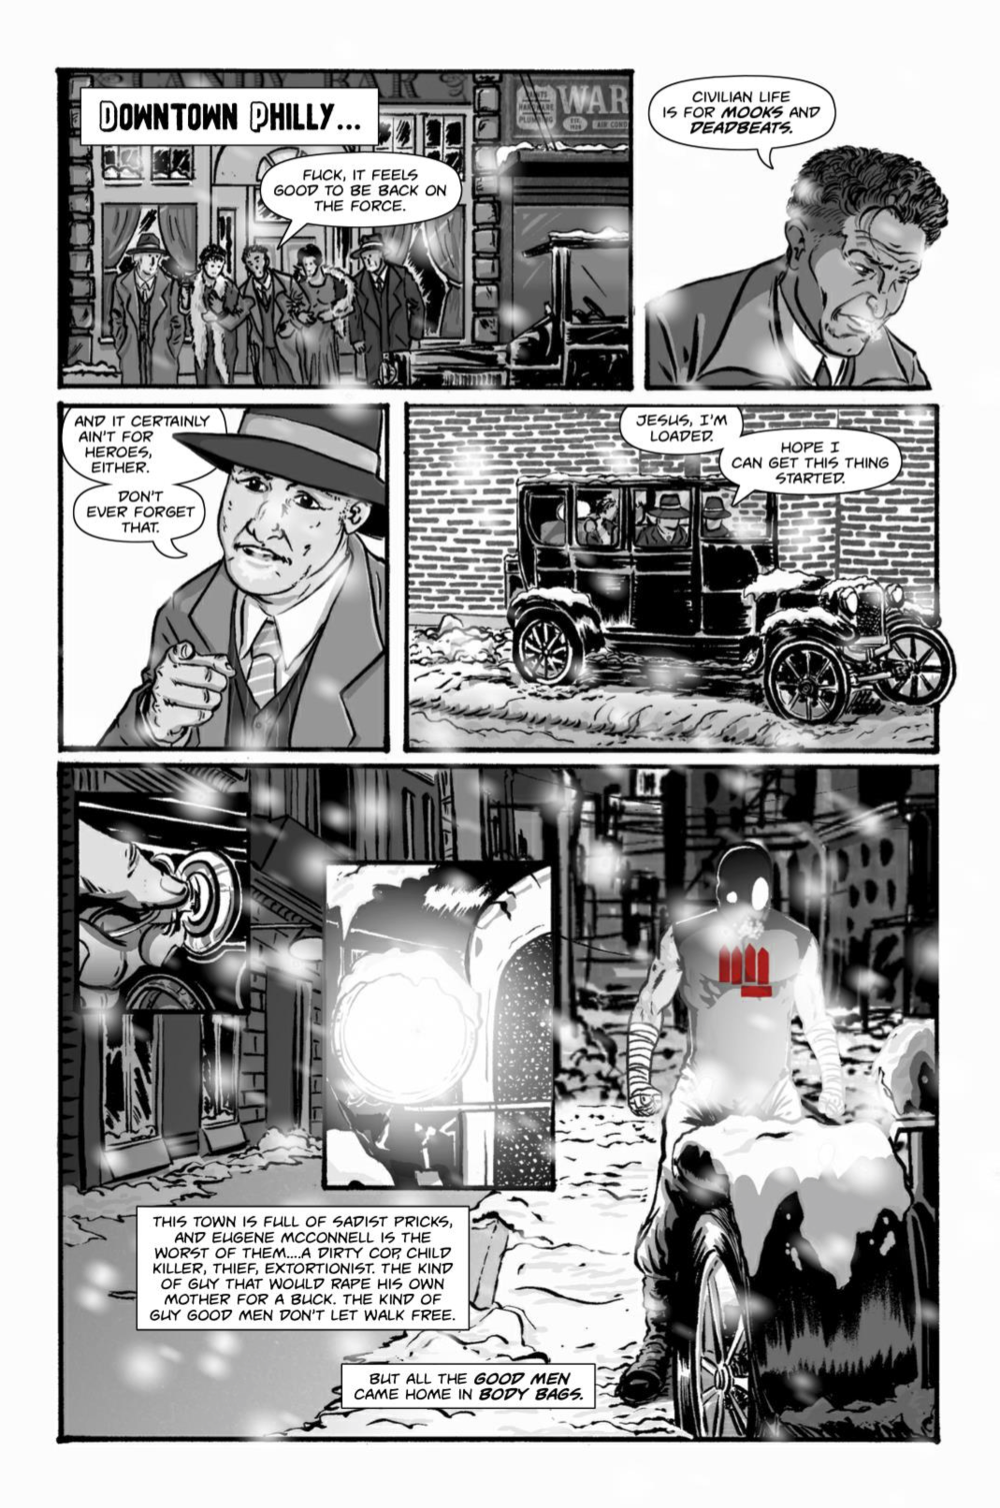 A page out of The Fist, issue #1.